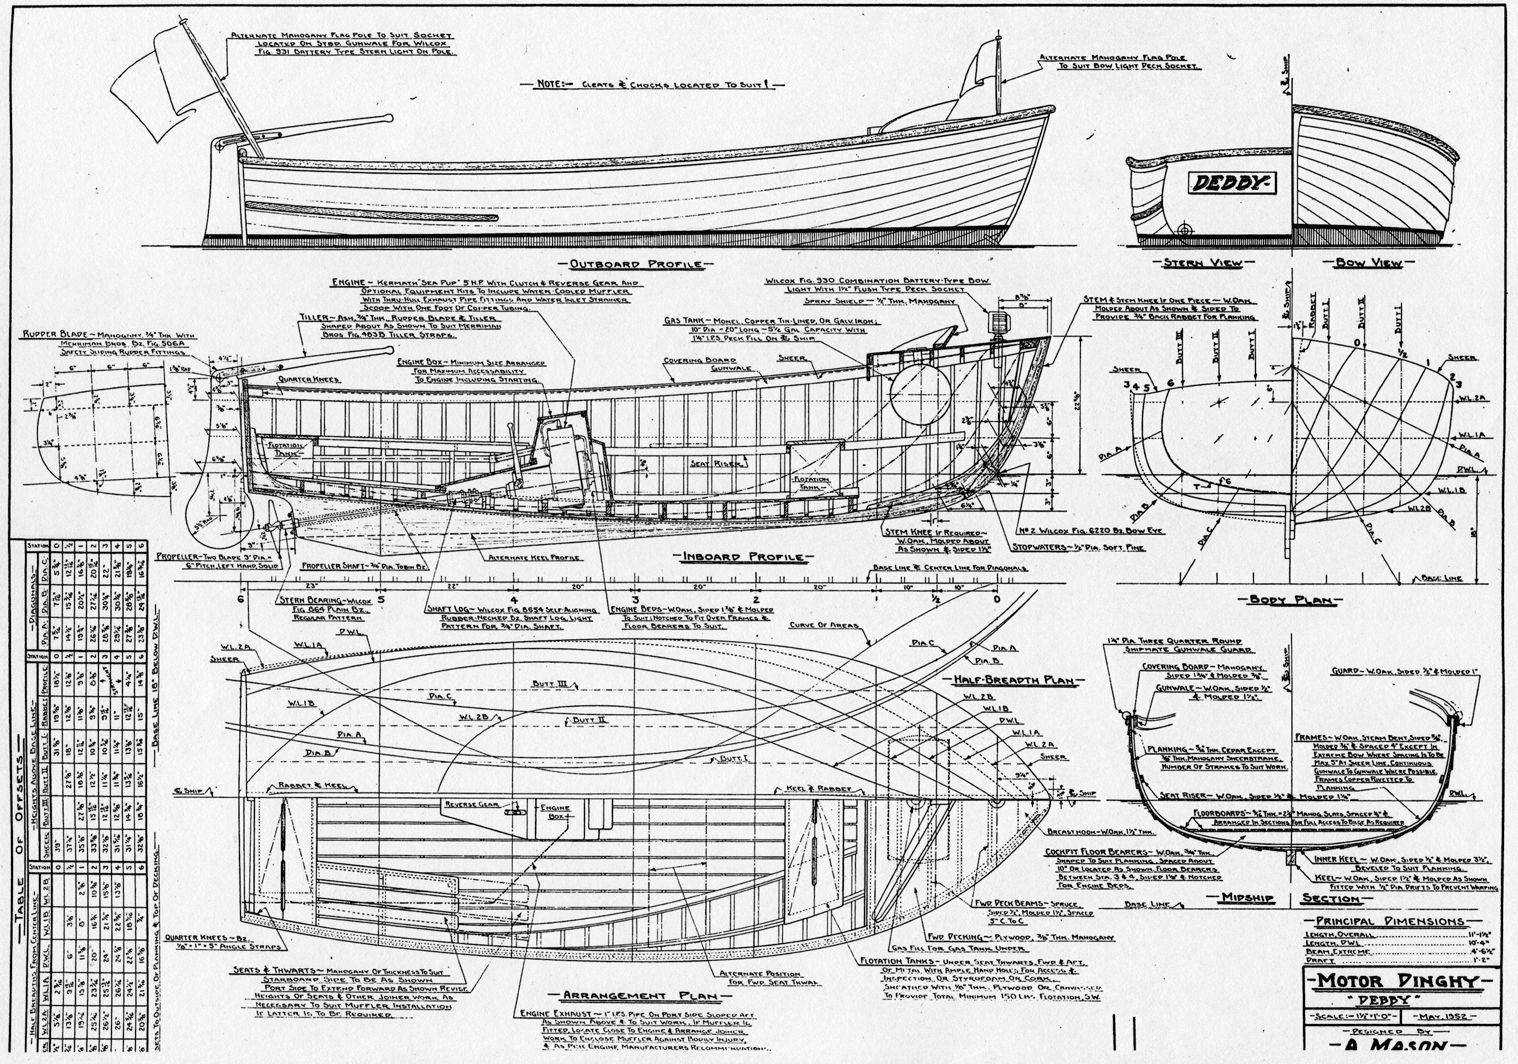 Chris craft model boat plans - Wooden Boats